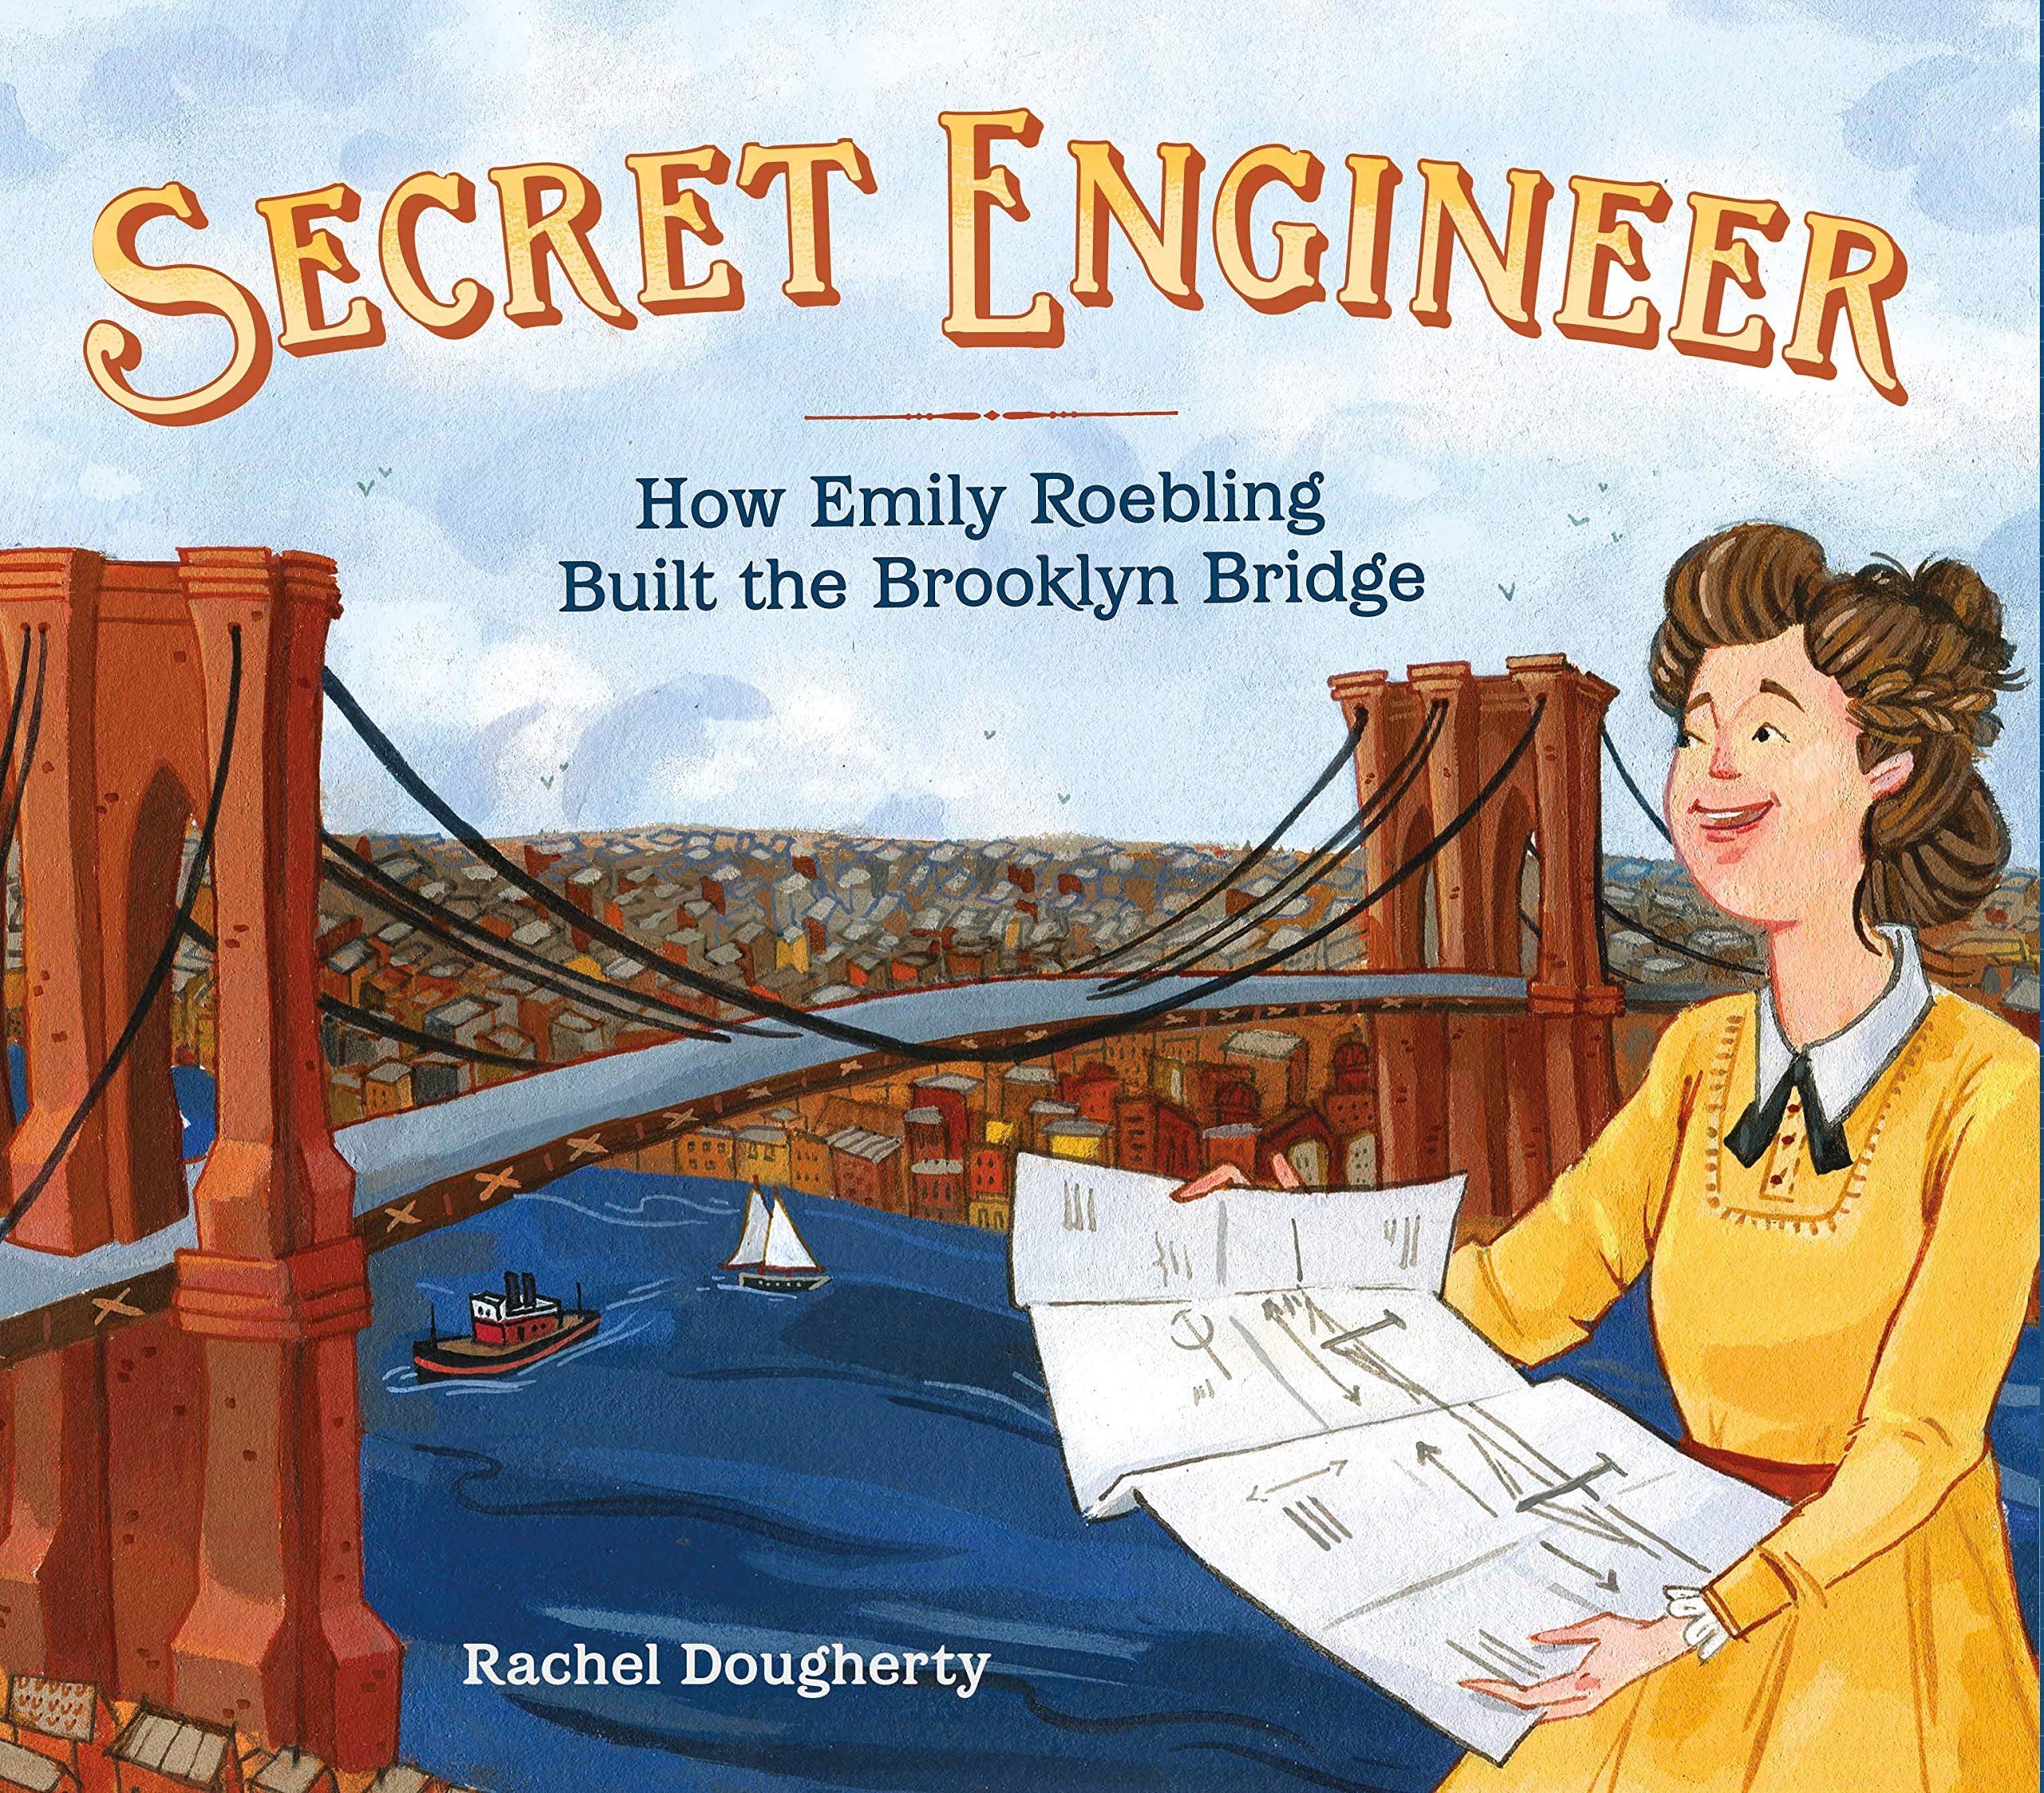 Secret engineer Opens in new window